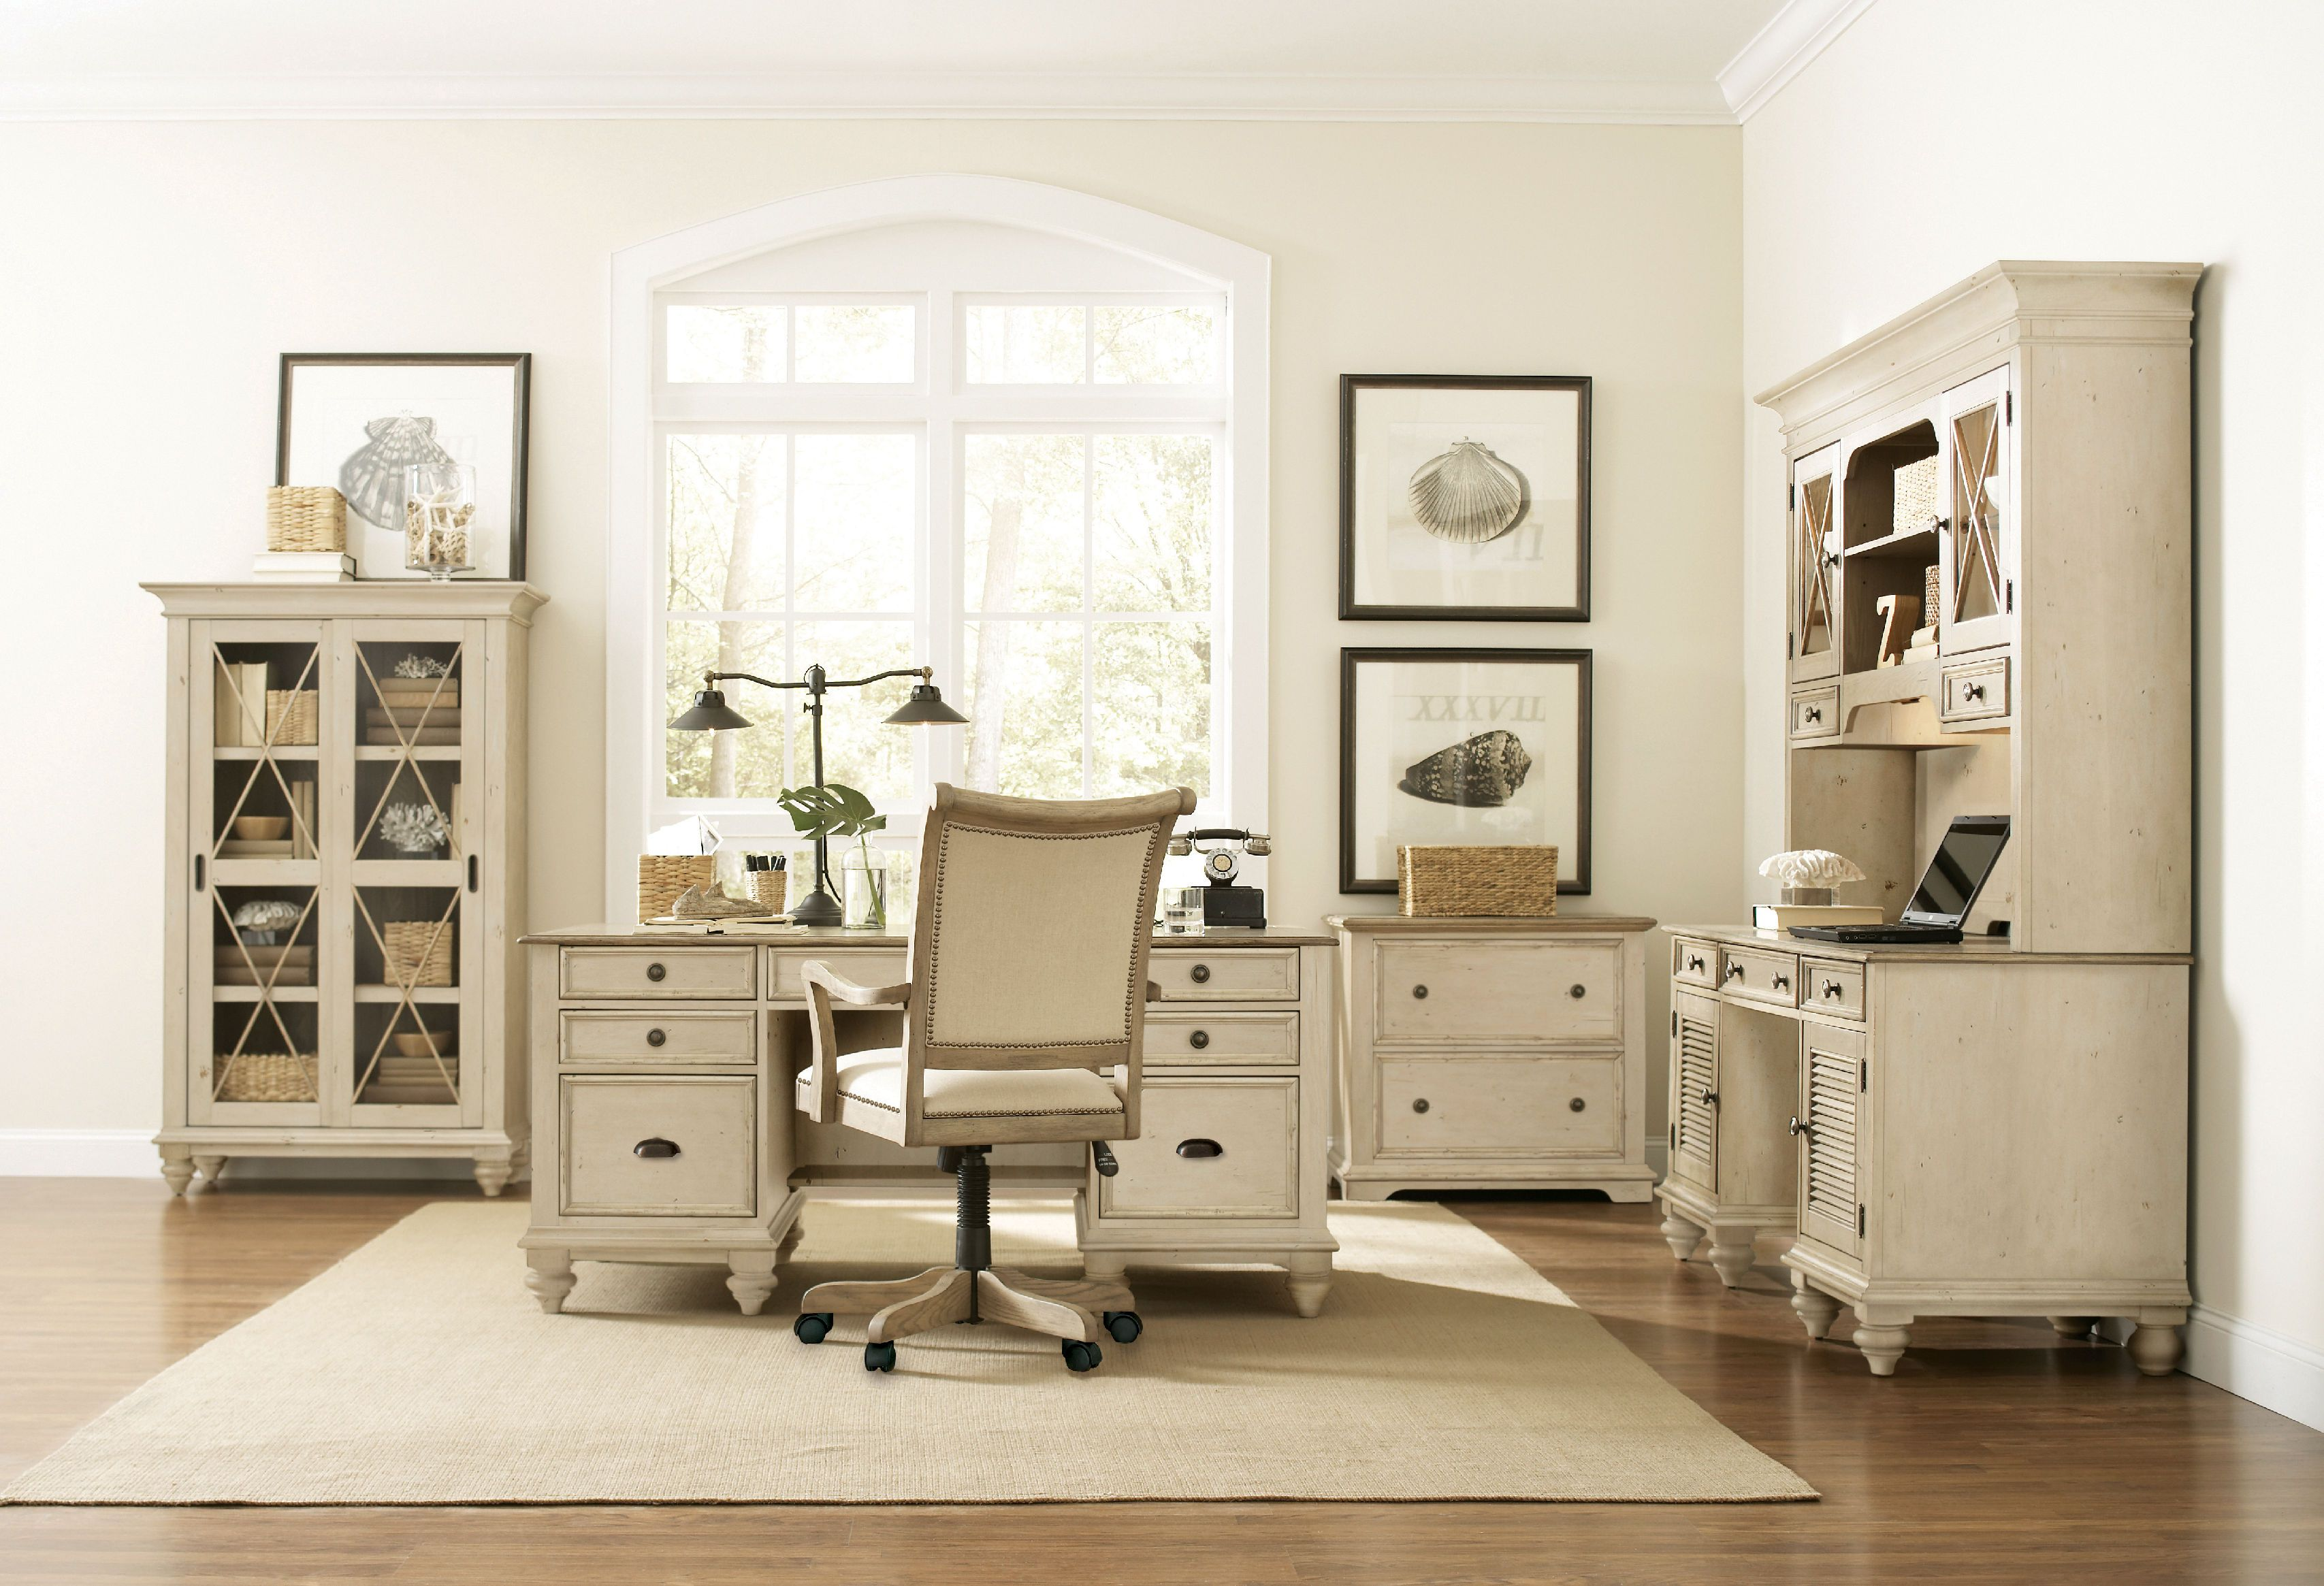 home office home office furniture desk home office home office workstation  home office design for small. home office home office furniture desk home office home office